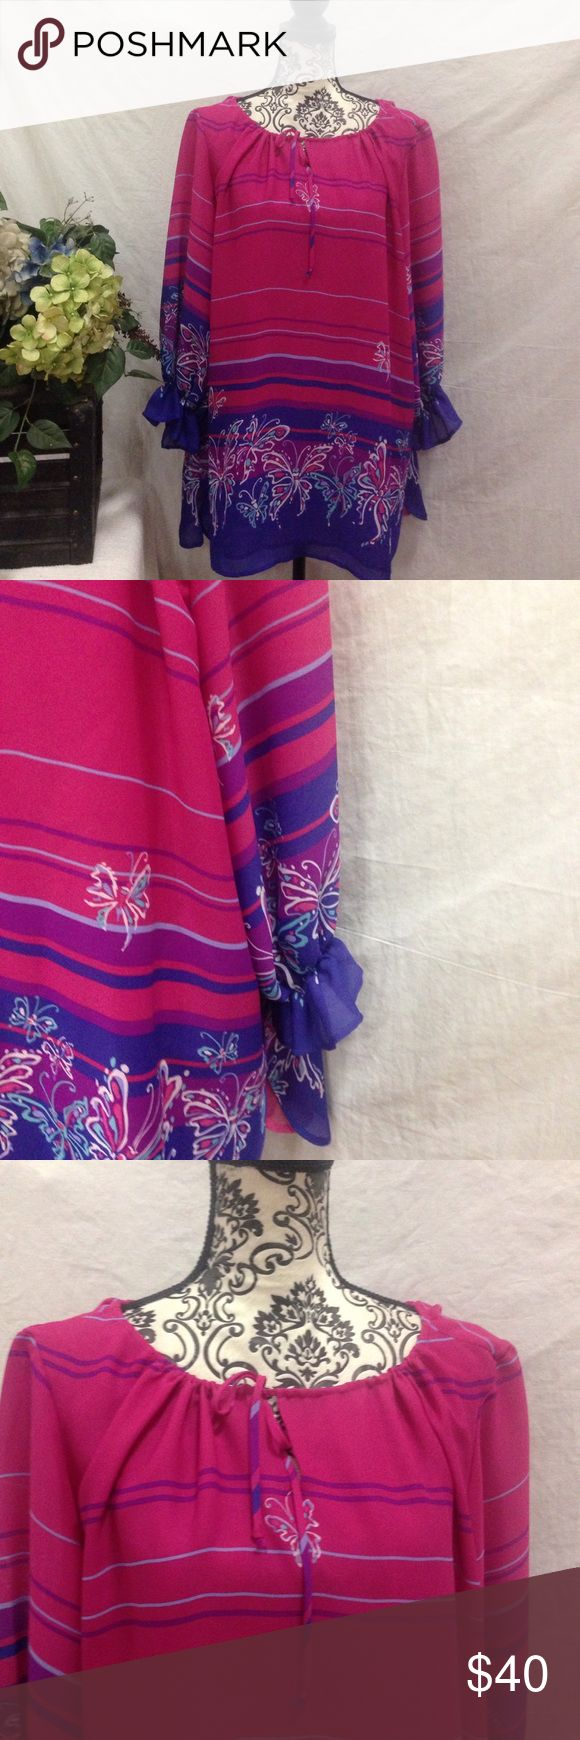 Bob Mackie Fuchsia/Purple Dress/Tunic Bob Mackie! Fuchsia and purple. Lined. Ties at the neck. Can be worn as a mini dress or long Tunic. Great quality. No flaws. Size XL. Bob Mackie Dresses Mini